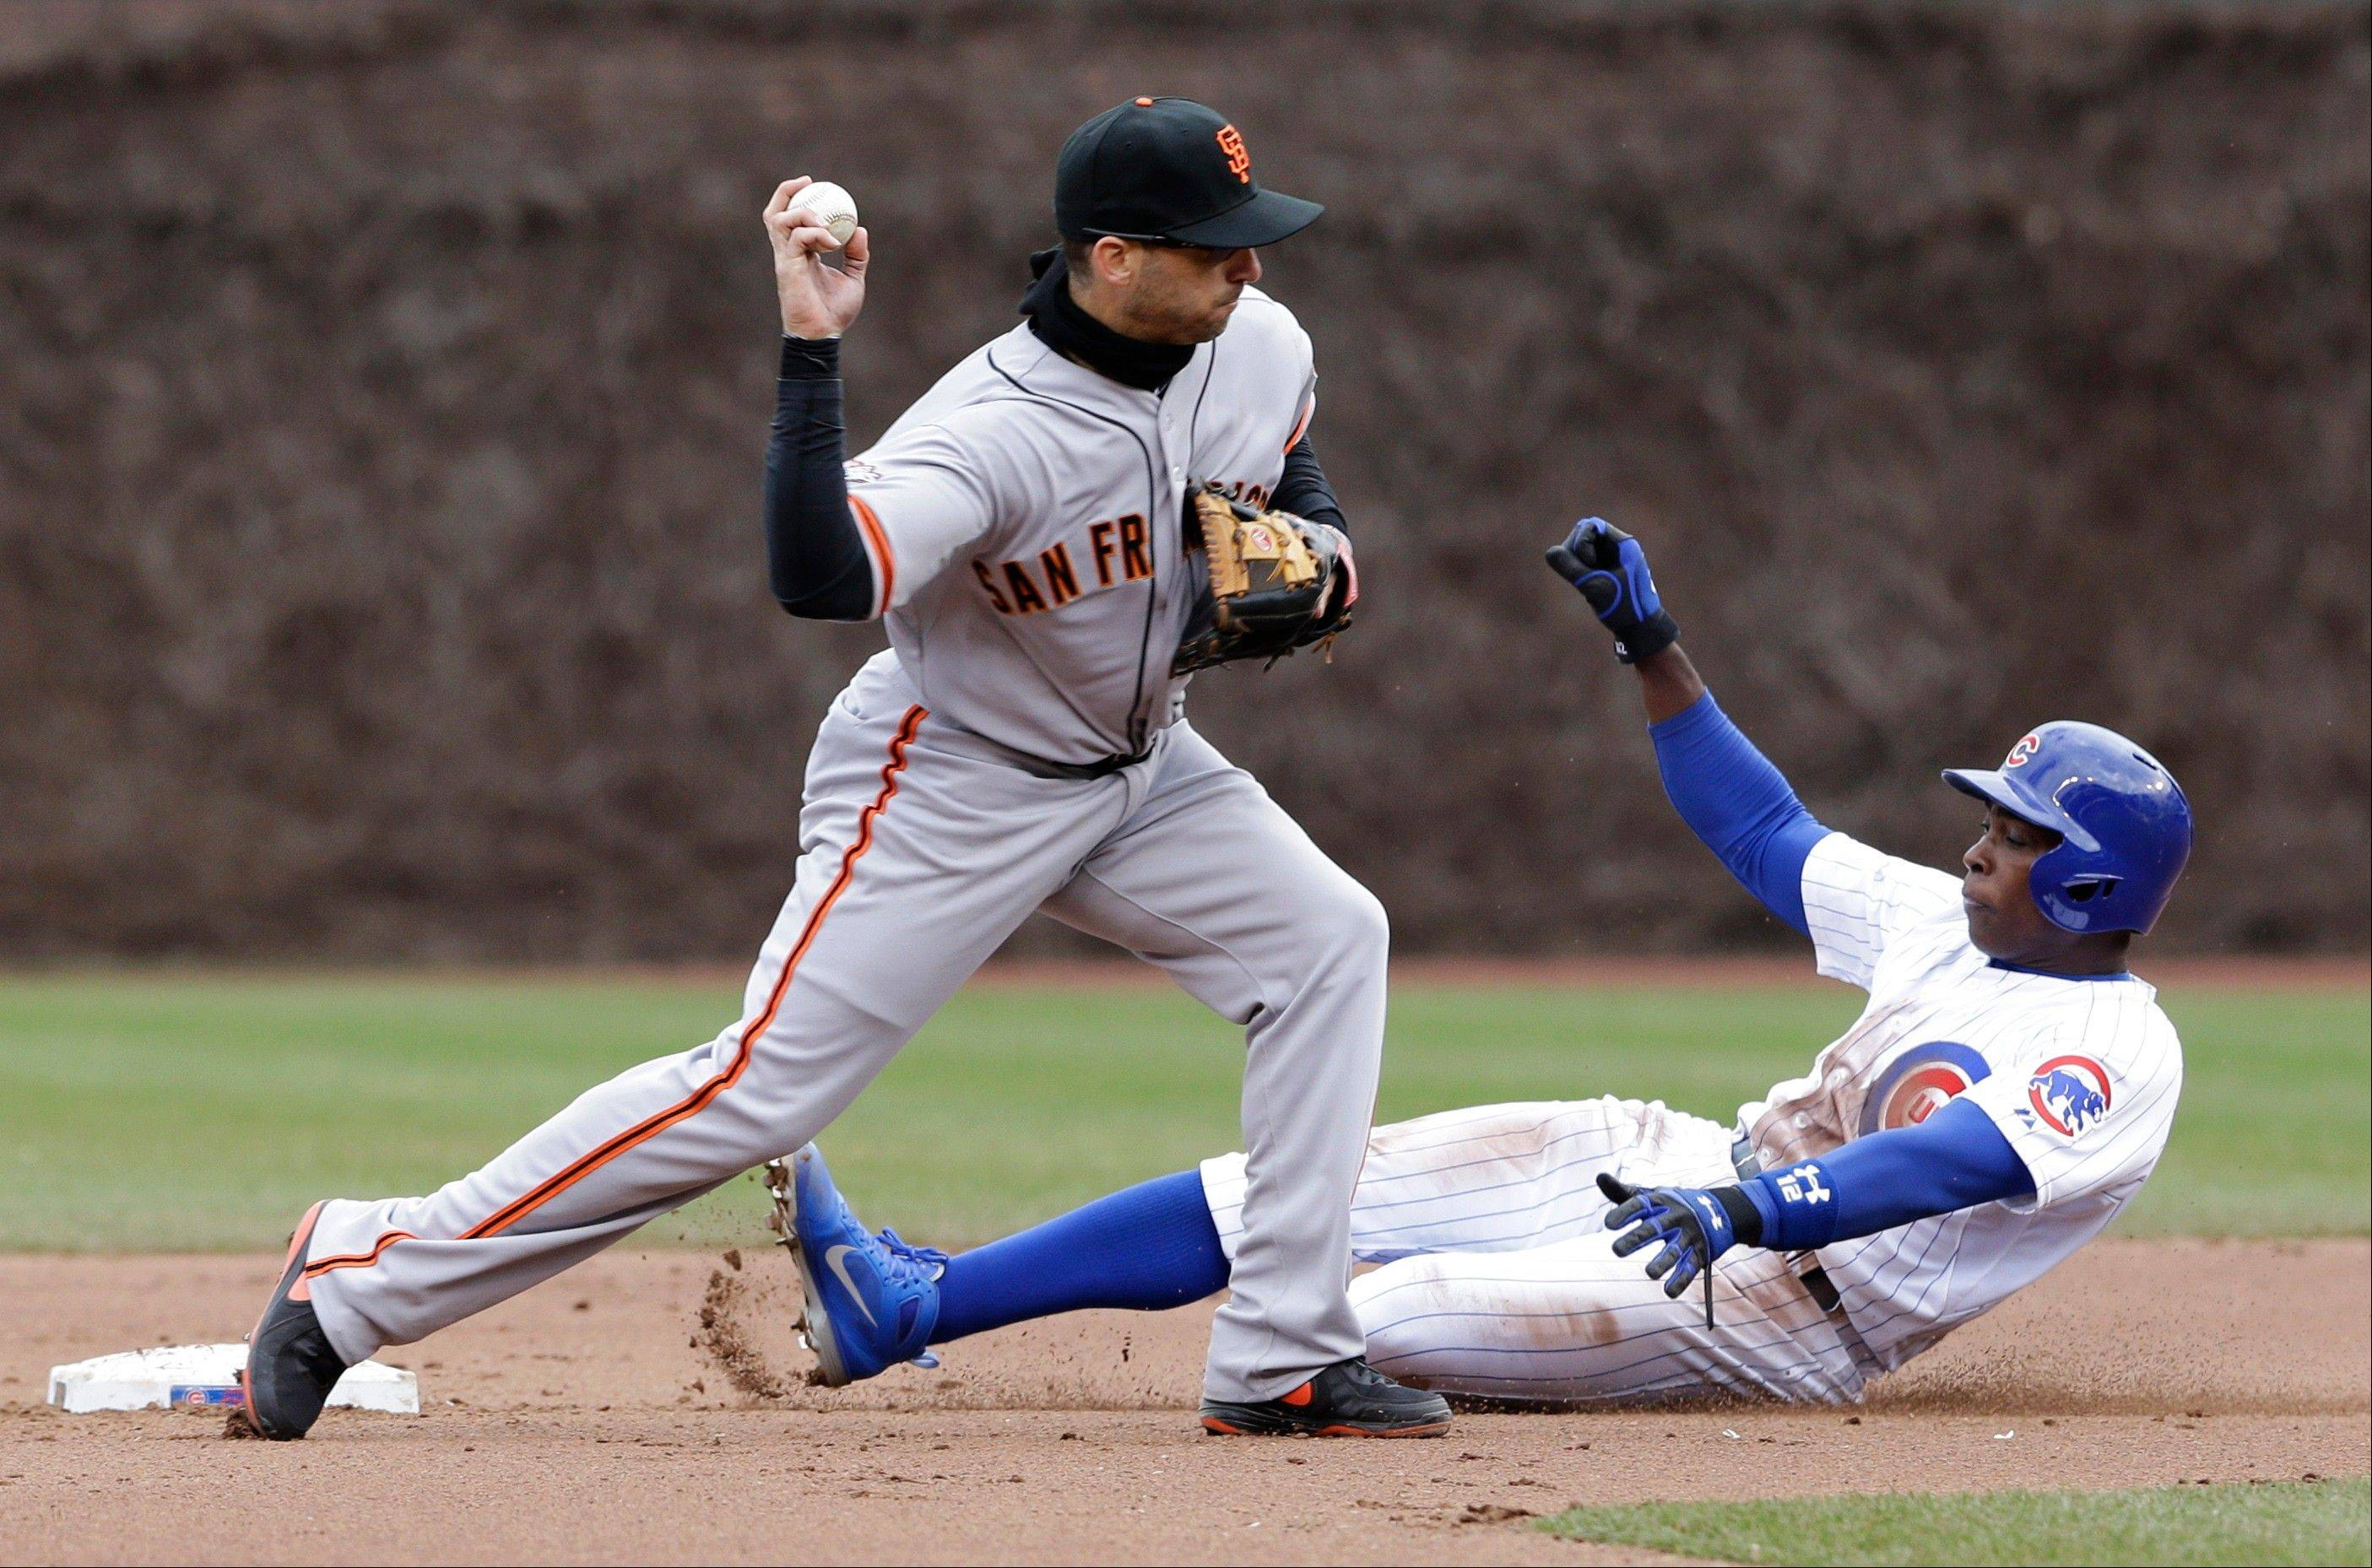 San Francisco Giants second baseman Marco Scutaro, left, throws to first after forcing out Chicago Cubs' Alfonso Soriano during the fourth inning of a baseball game Saturday in Chicago. Scott Hairston was safe at first.